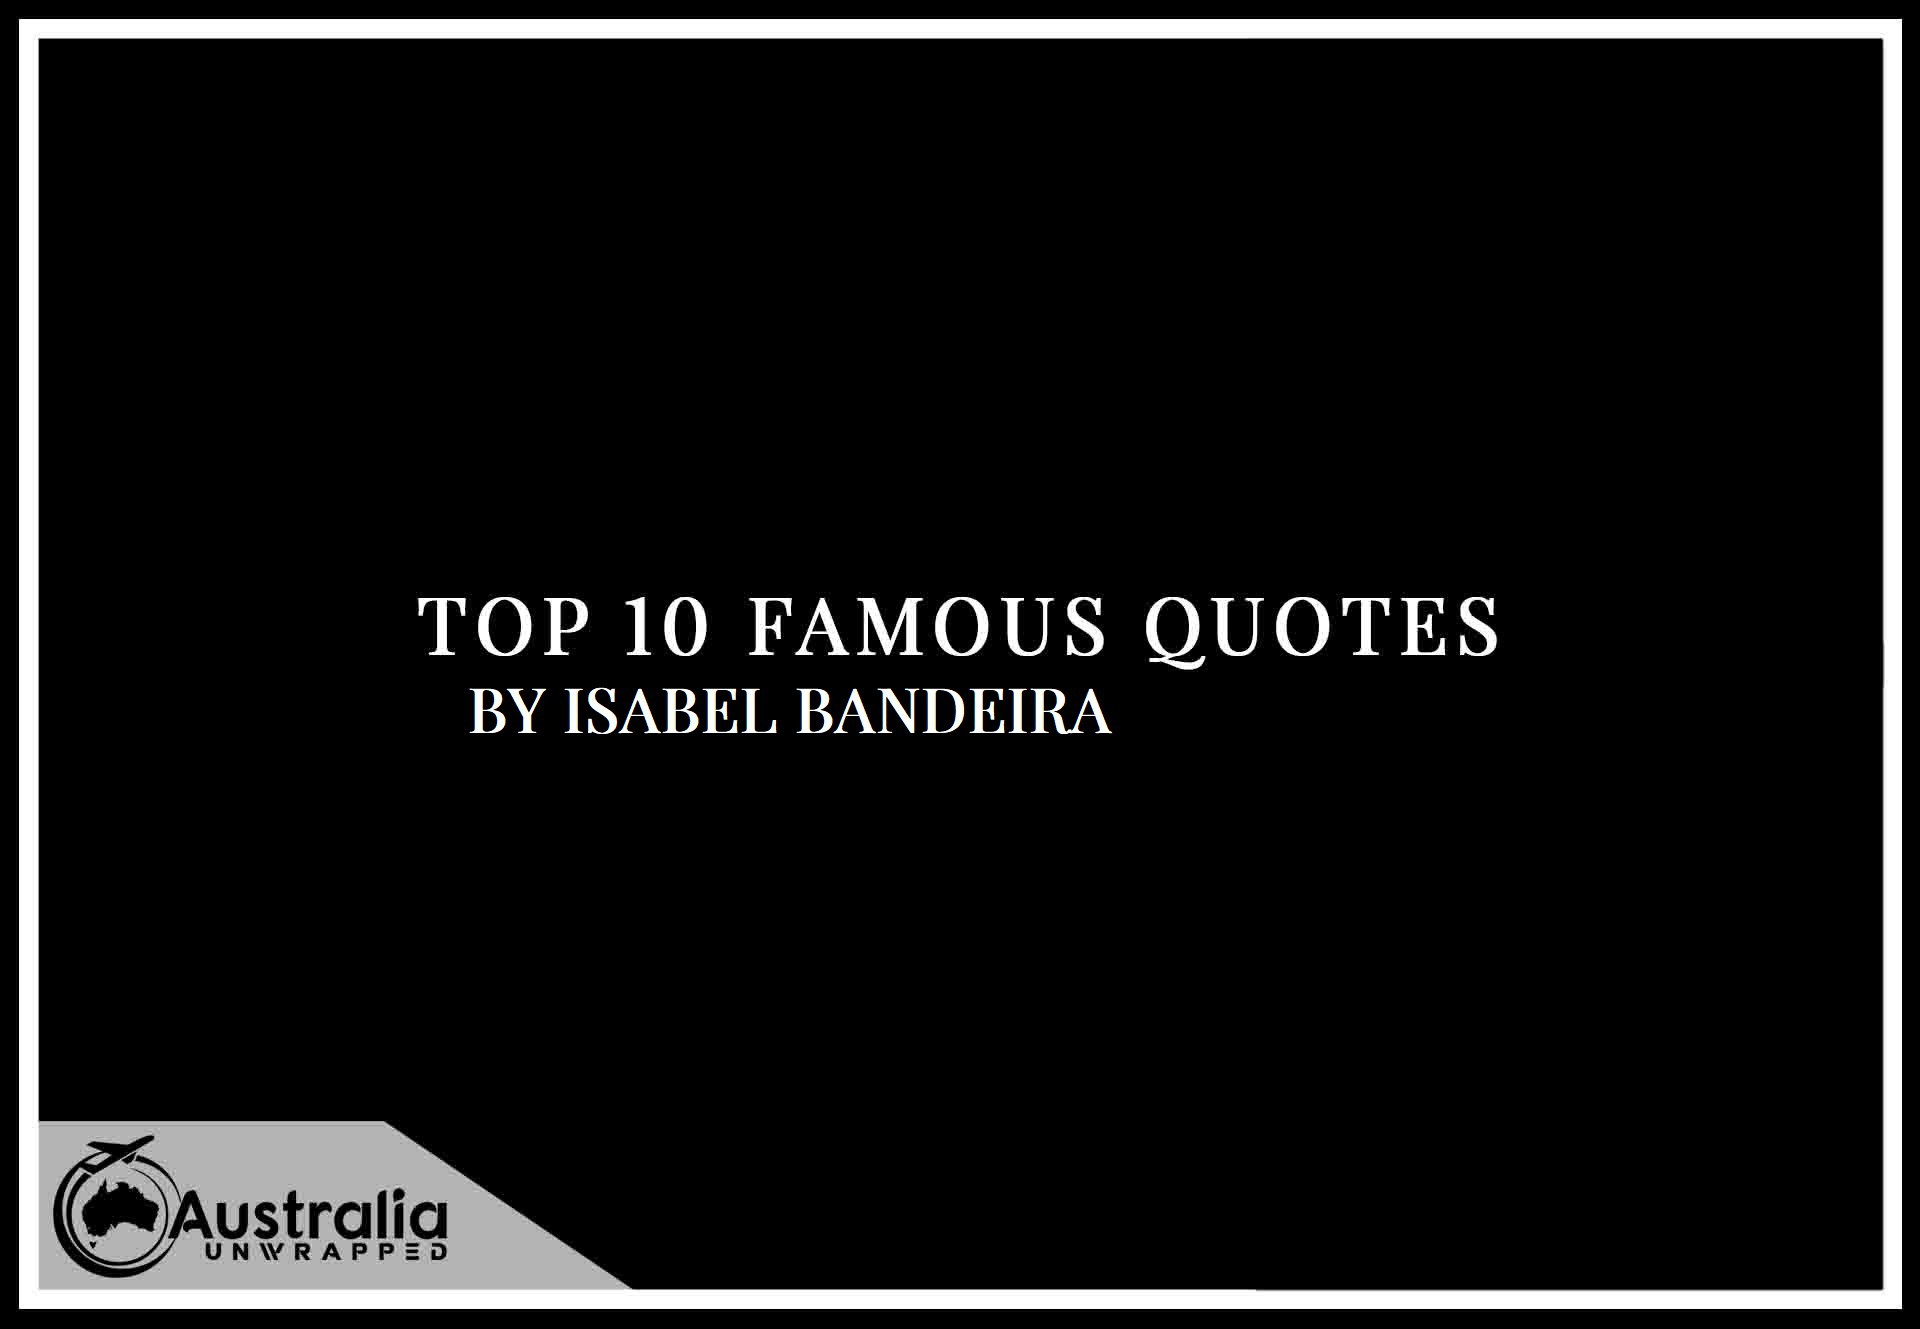 Top 10 Famous Quotes by Author Isabel Bandeira